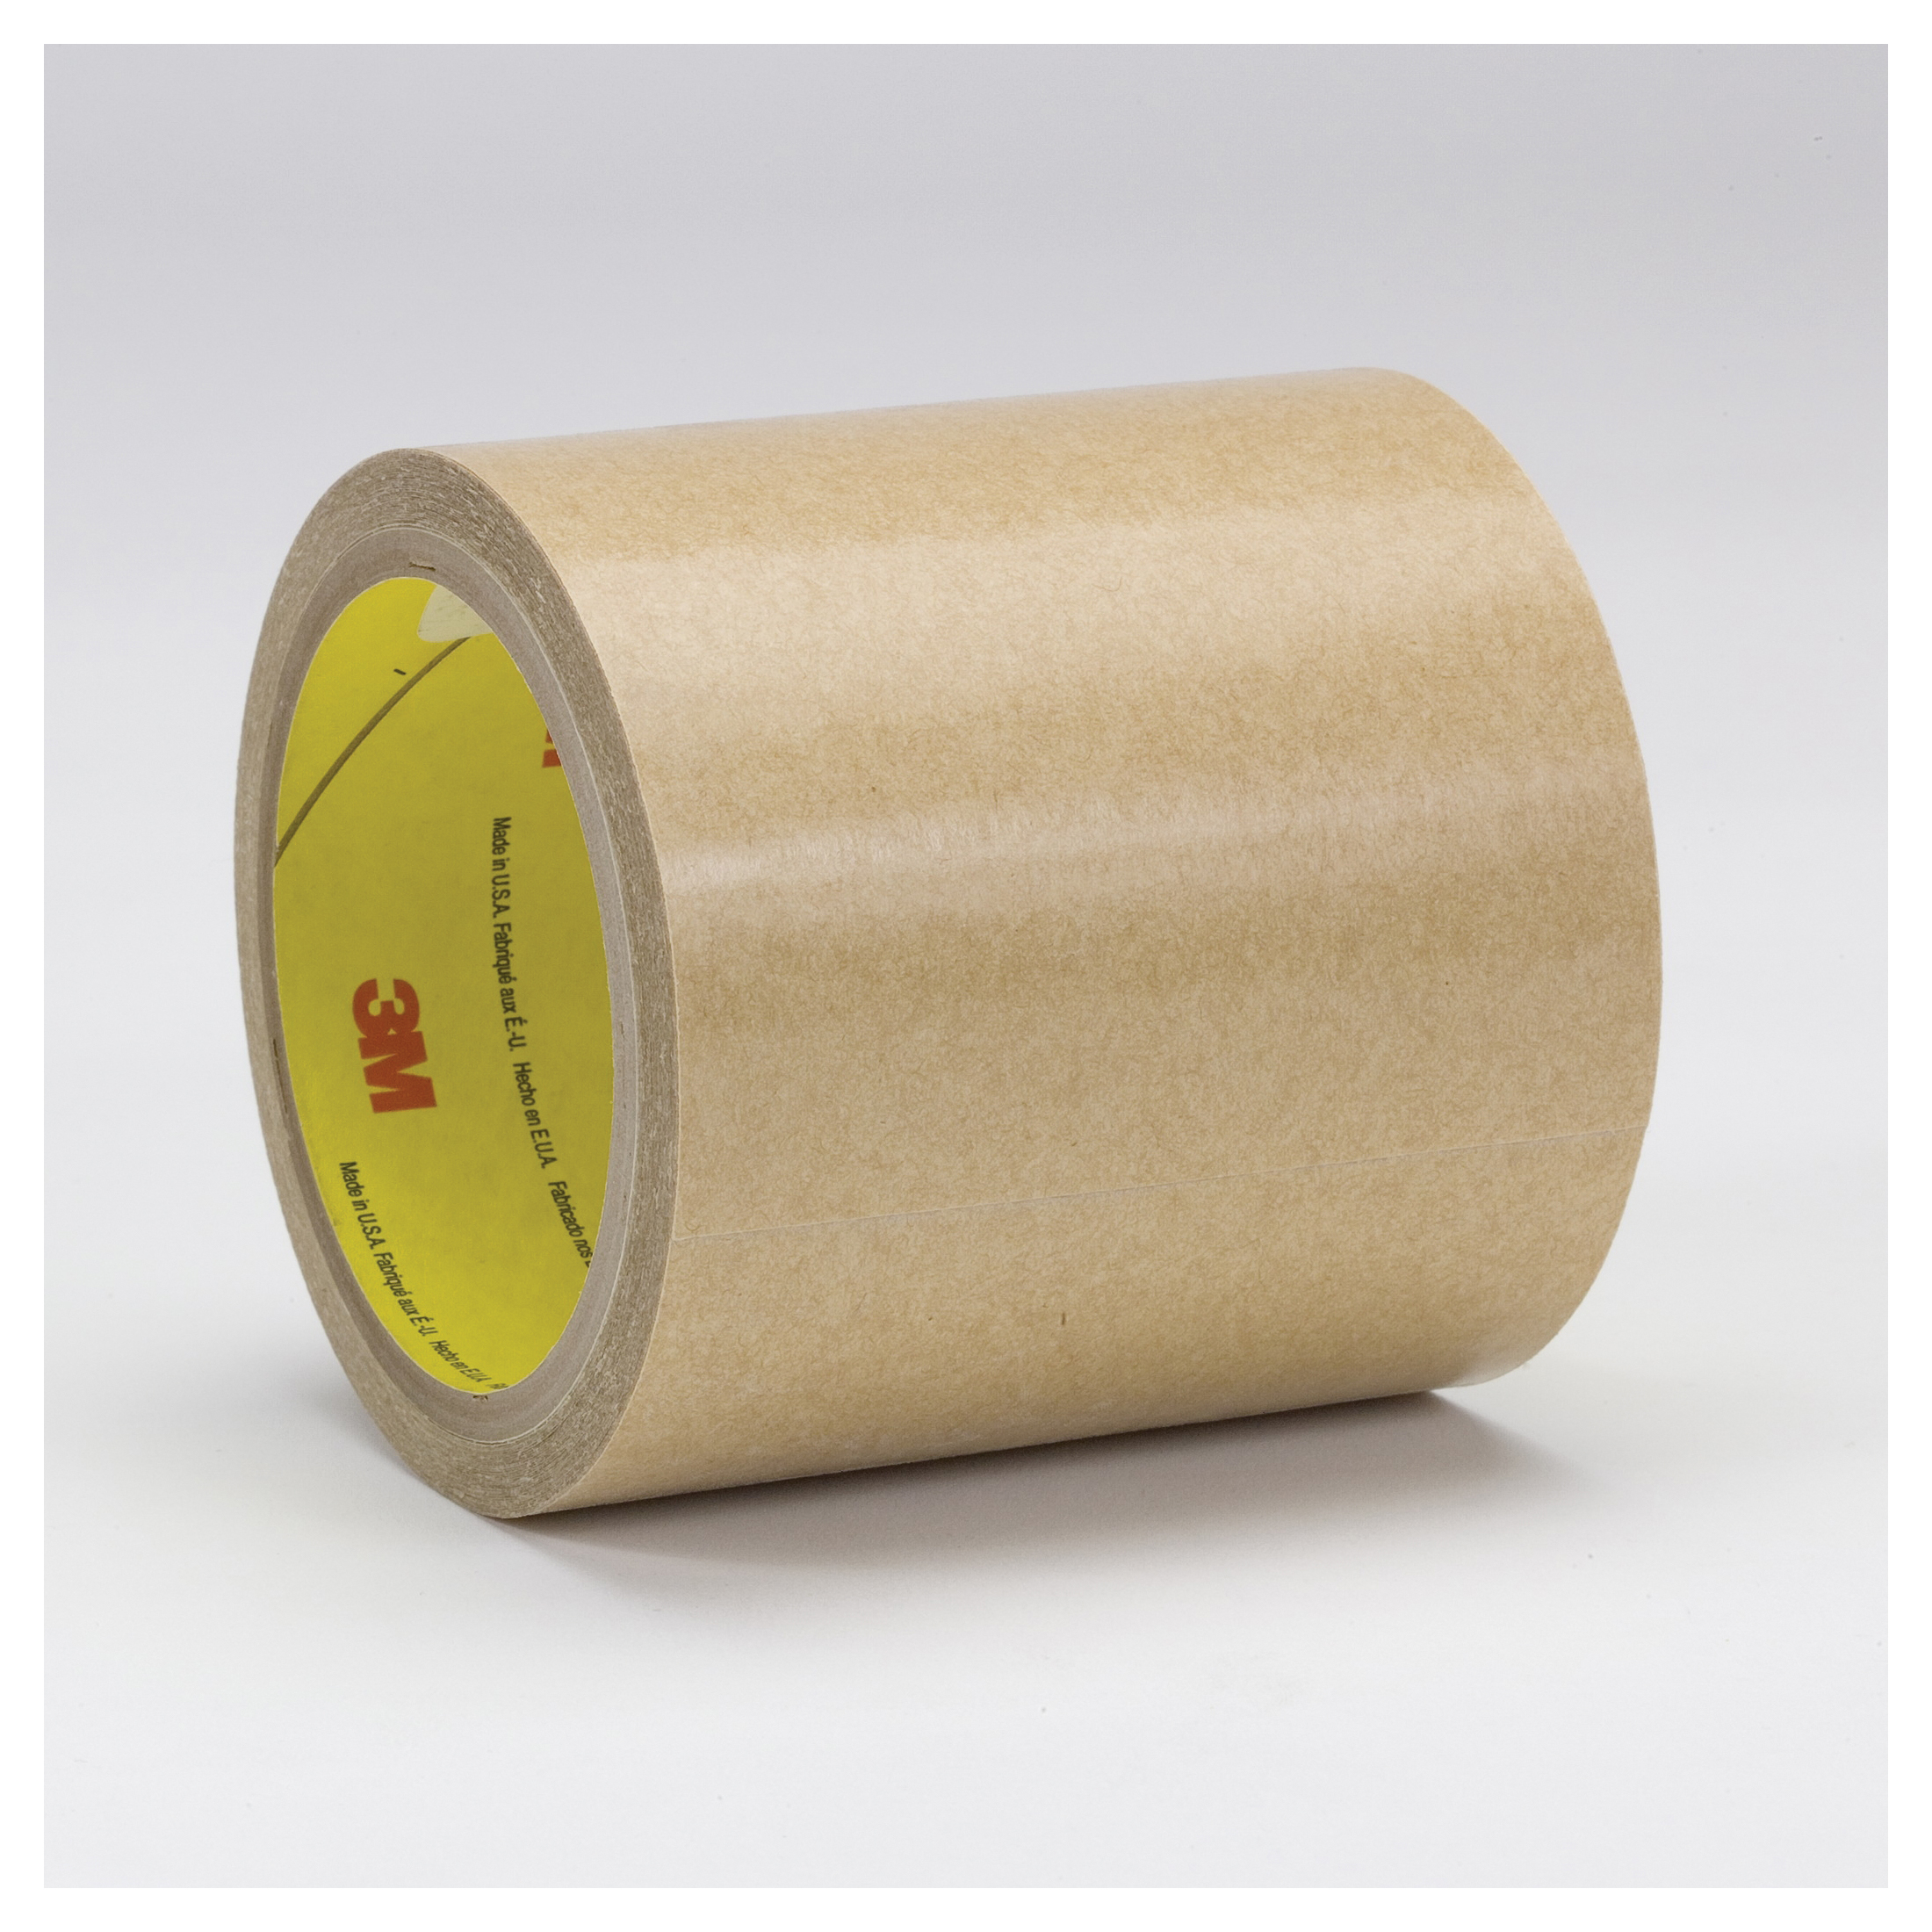 3M™ 021200-11703 General Purpose High Tack Adhesive Transfer Tape, 60 yd L x 16 in W, 8.5 mil THK, 5 mil 300 Acrylic Adhesive, Clear